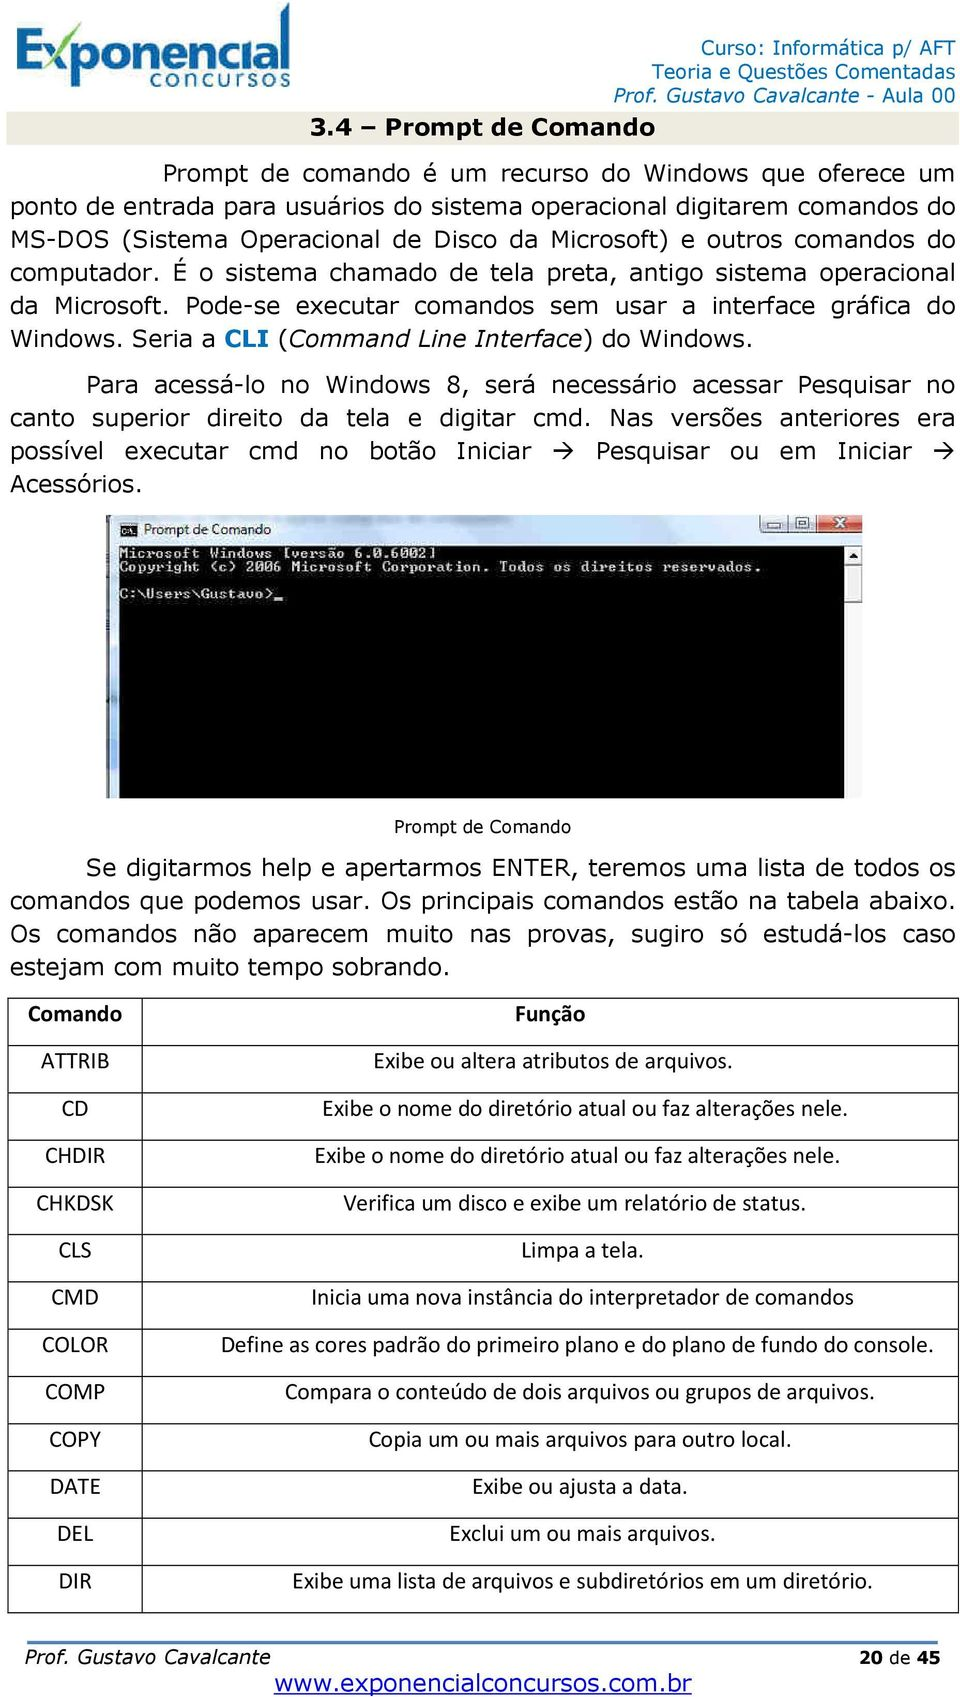 Pode-se executar comandos sem usar a interface gráfica do Windows. Seria a CLI (Command Line Interface) do Windows.